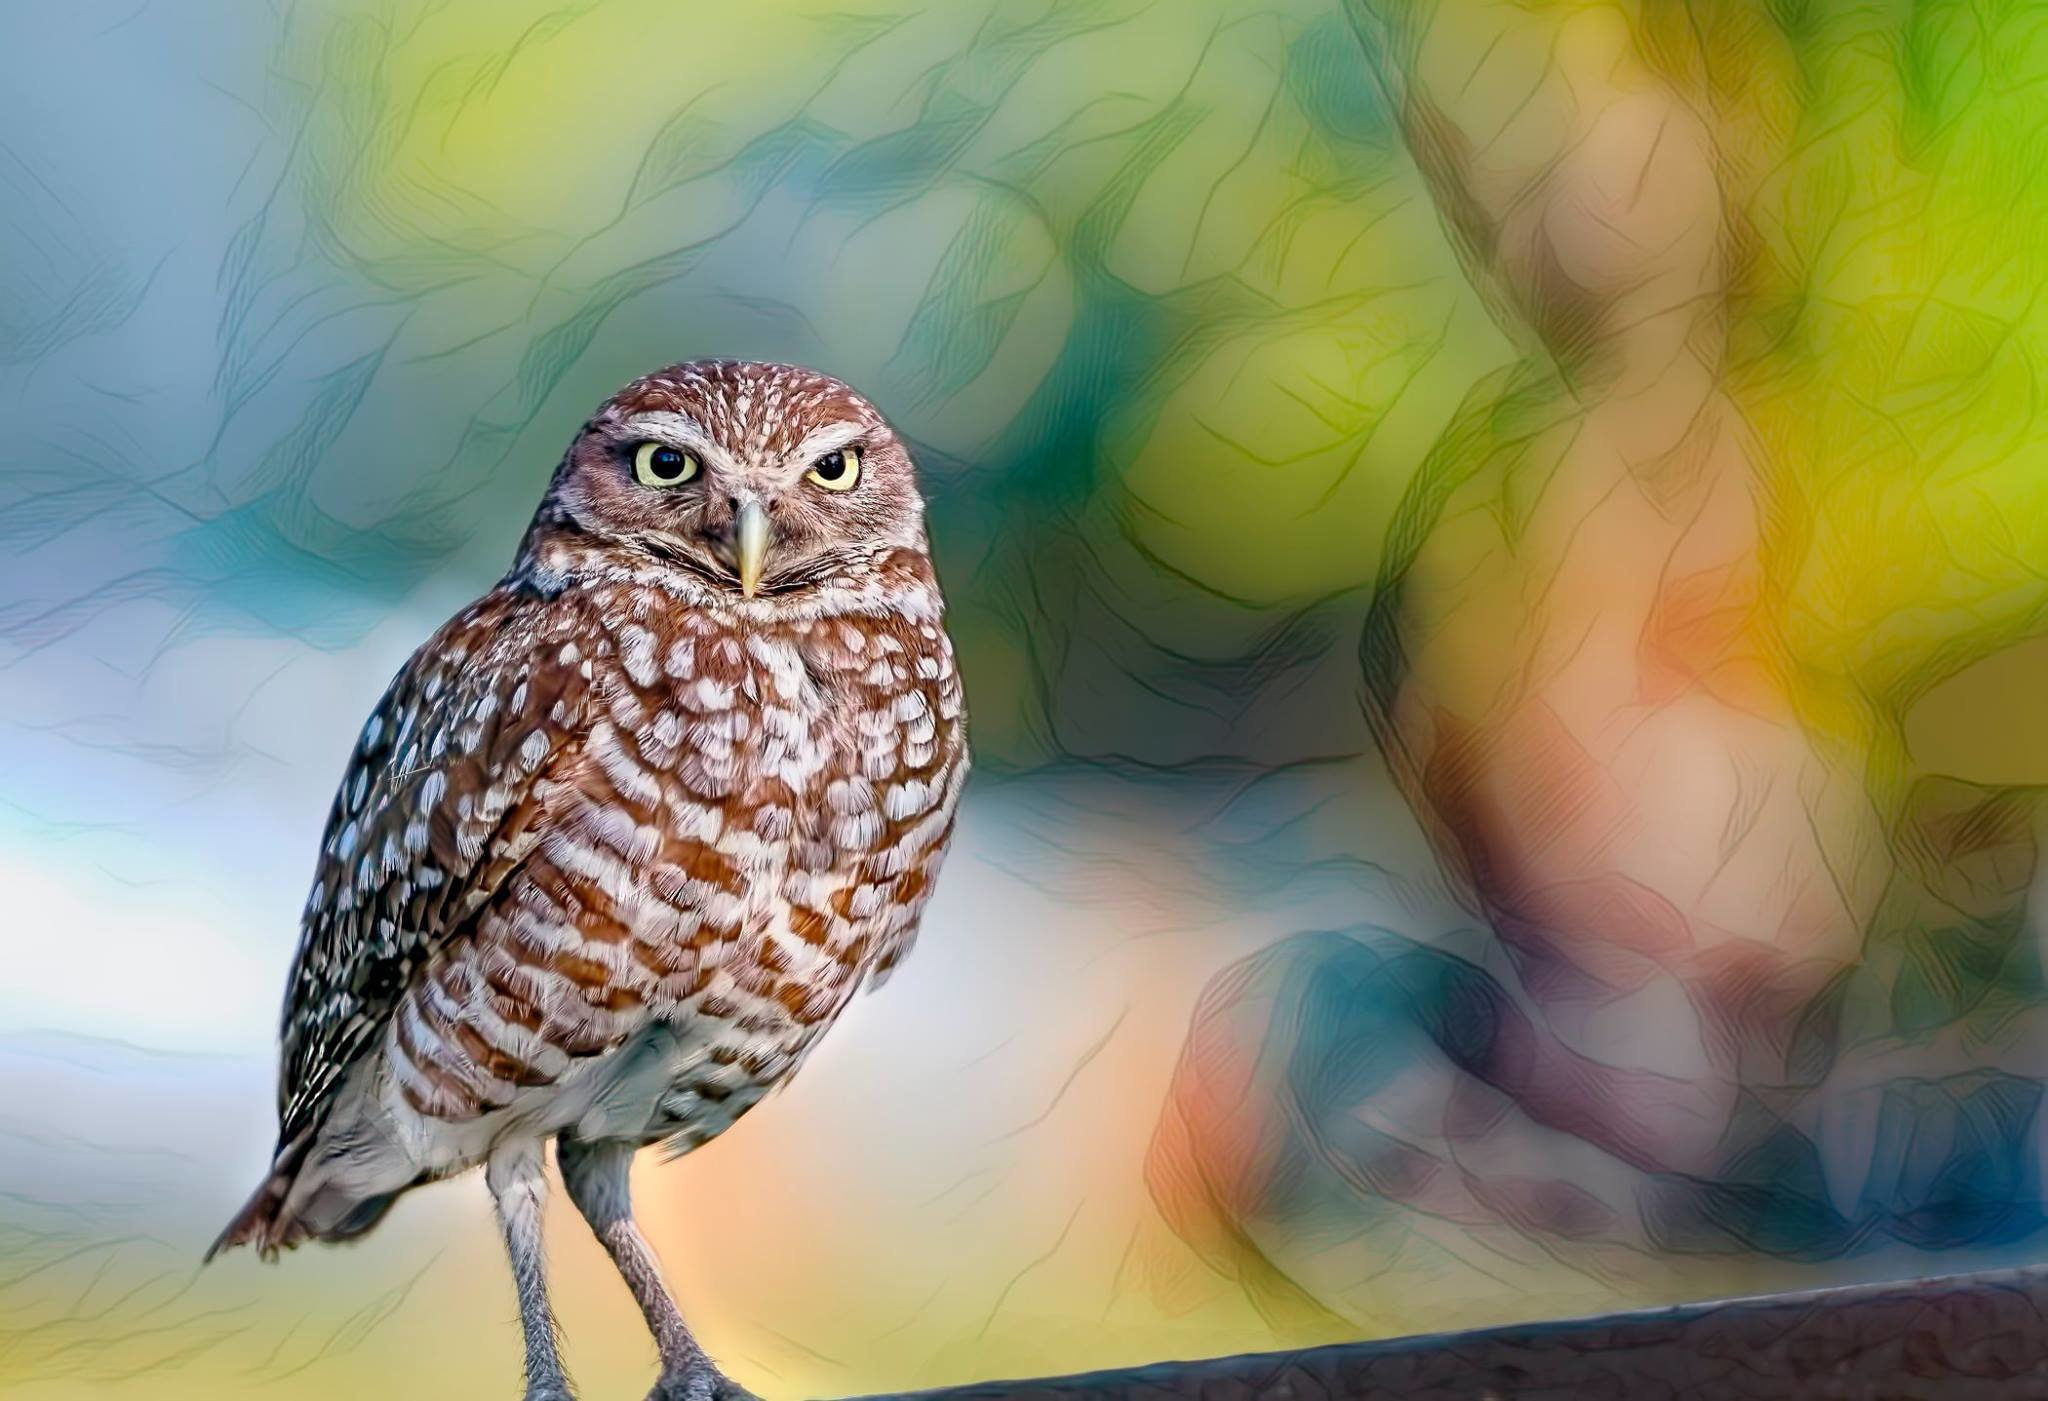 A Very Small Ground Burrowing Owl 001-122